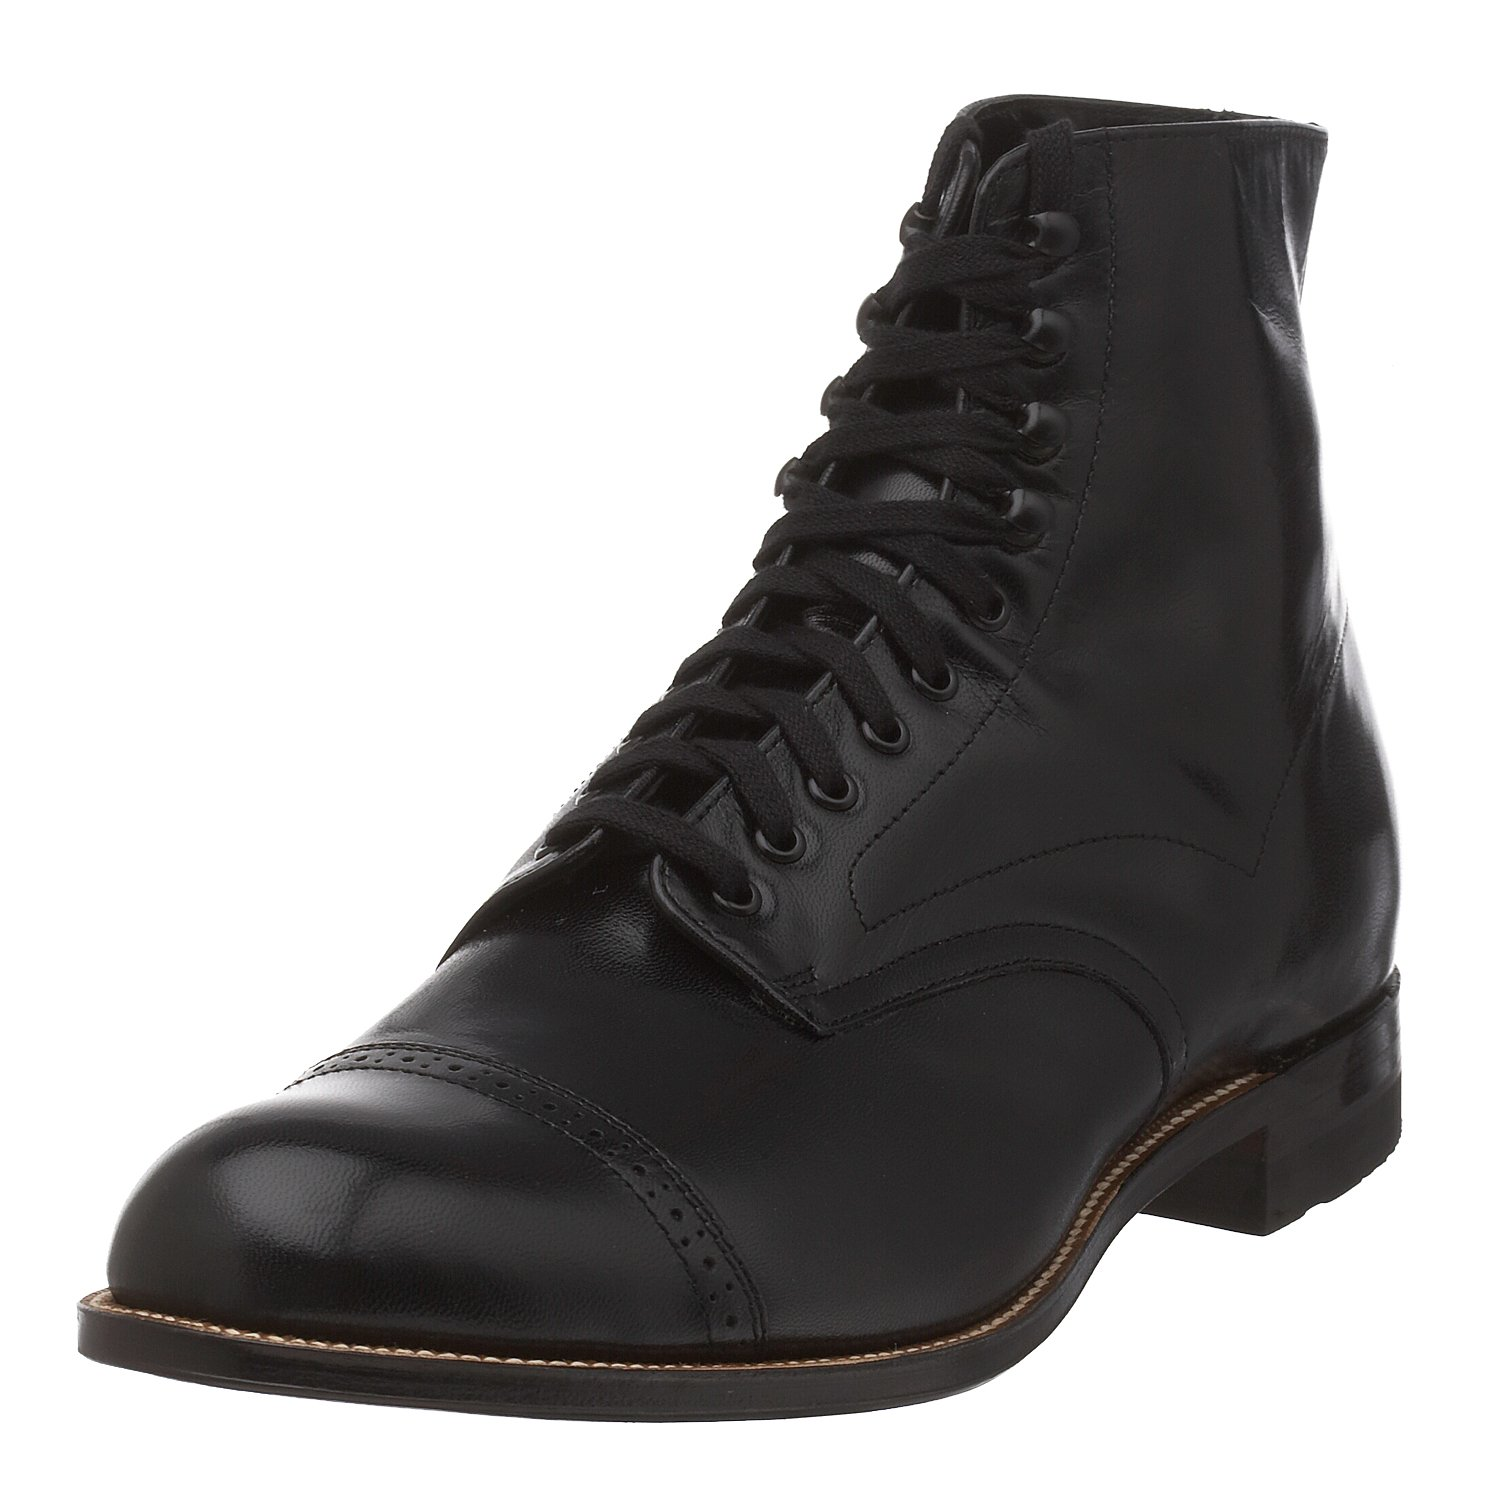 Steampunk Boots and Shoes for Men UK - Stacy Adams Mens Madison Cap Toe Boot £96.11 AT vintagedancer.com